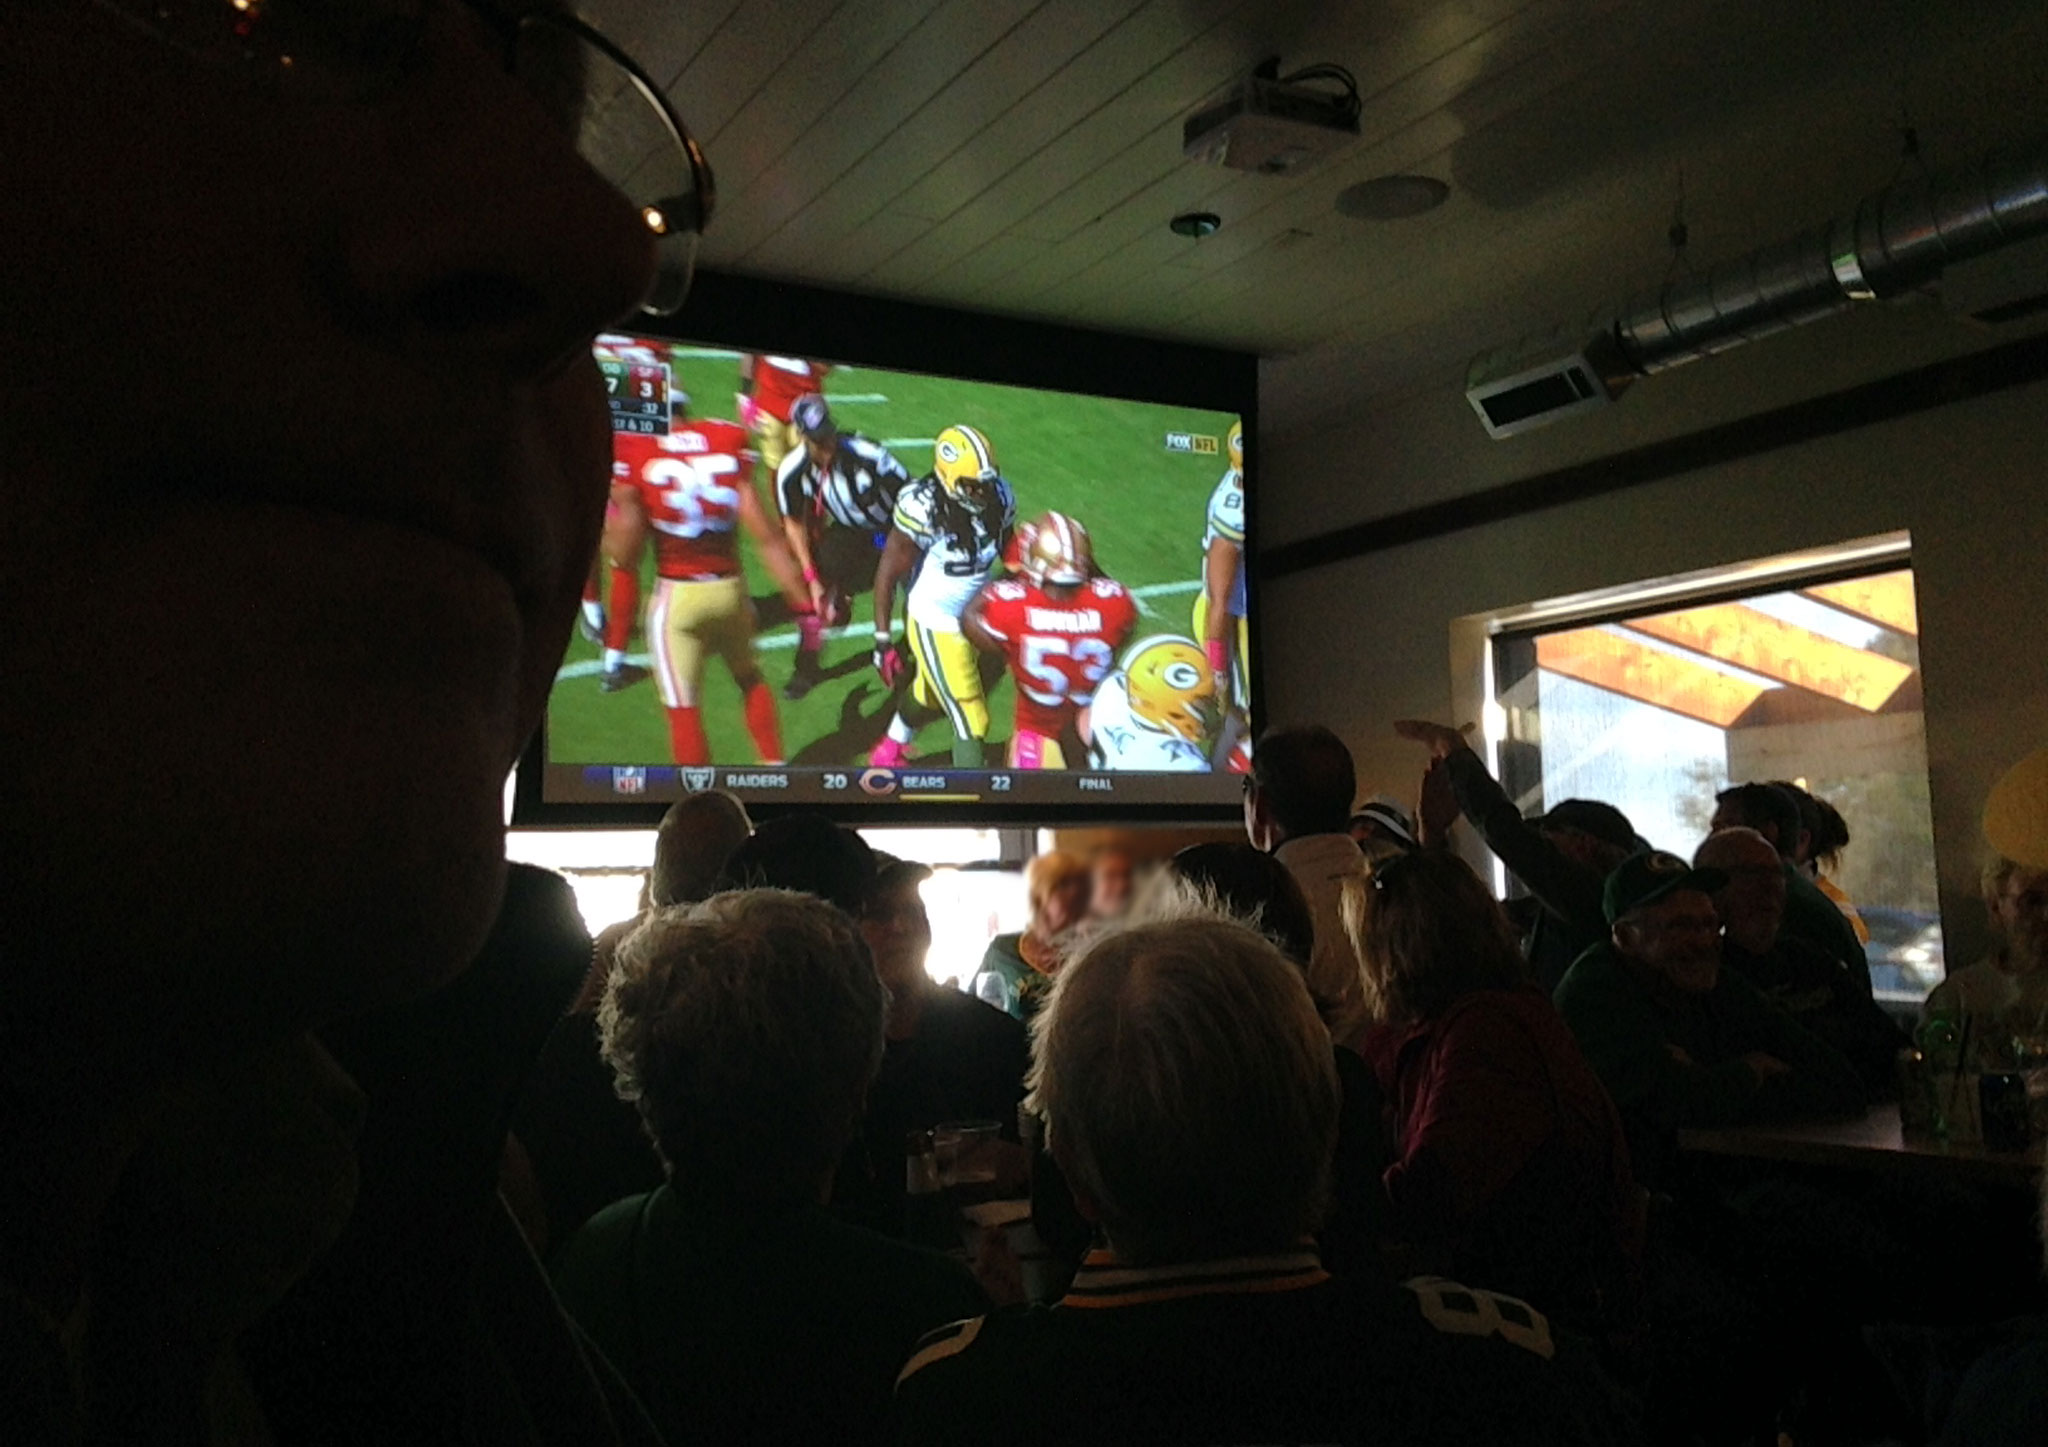 watching Packers play in The Creamery tavern in Bayfield, WI